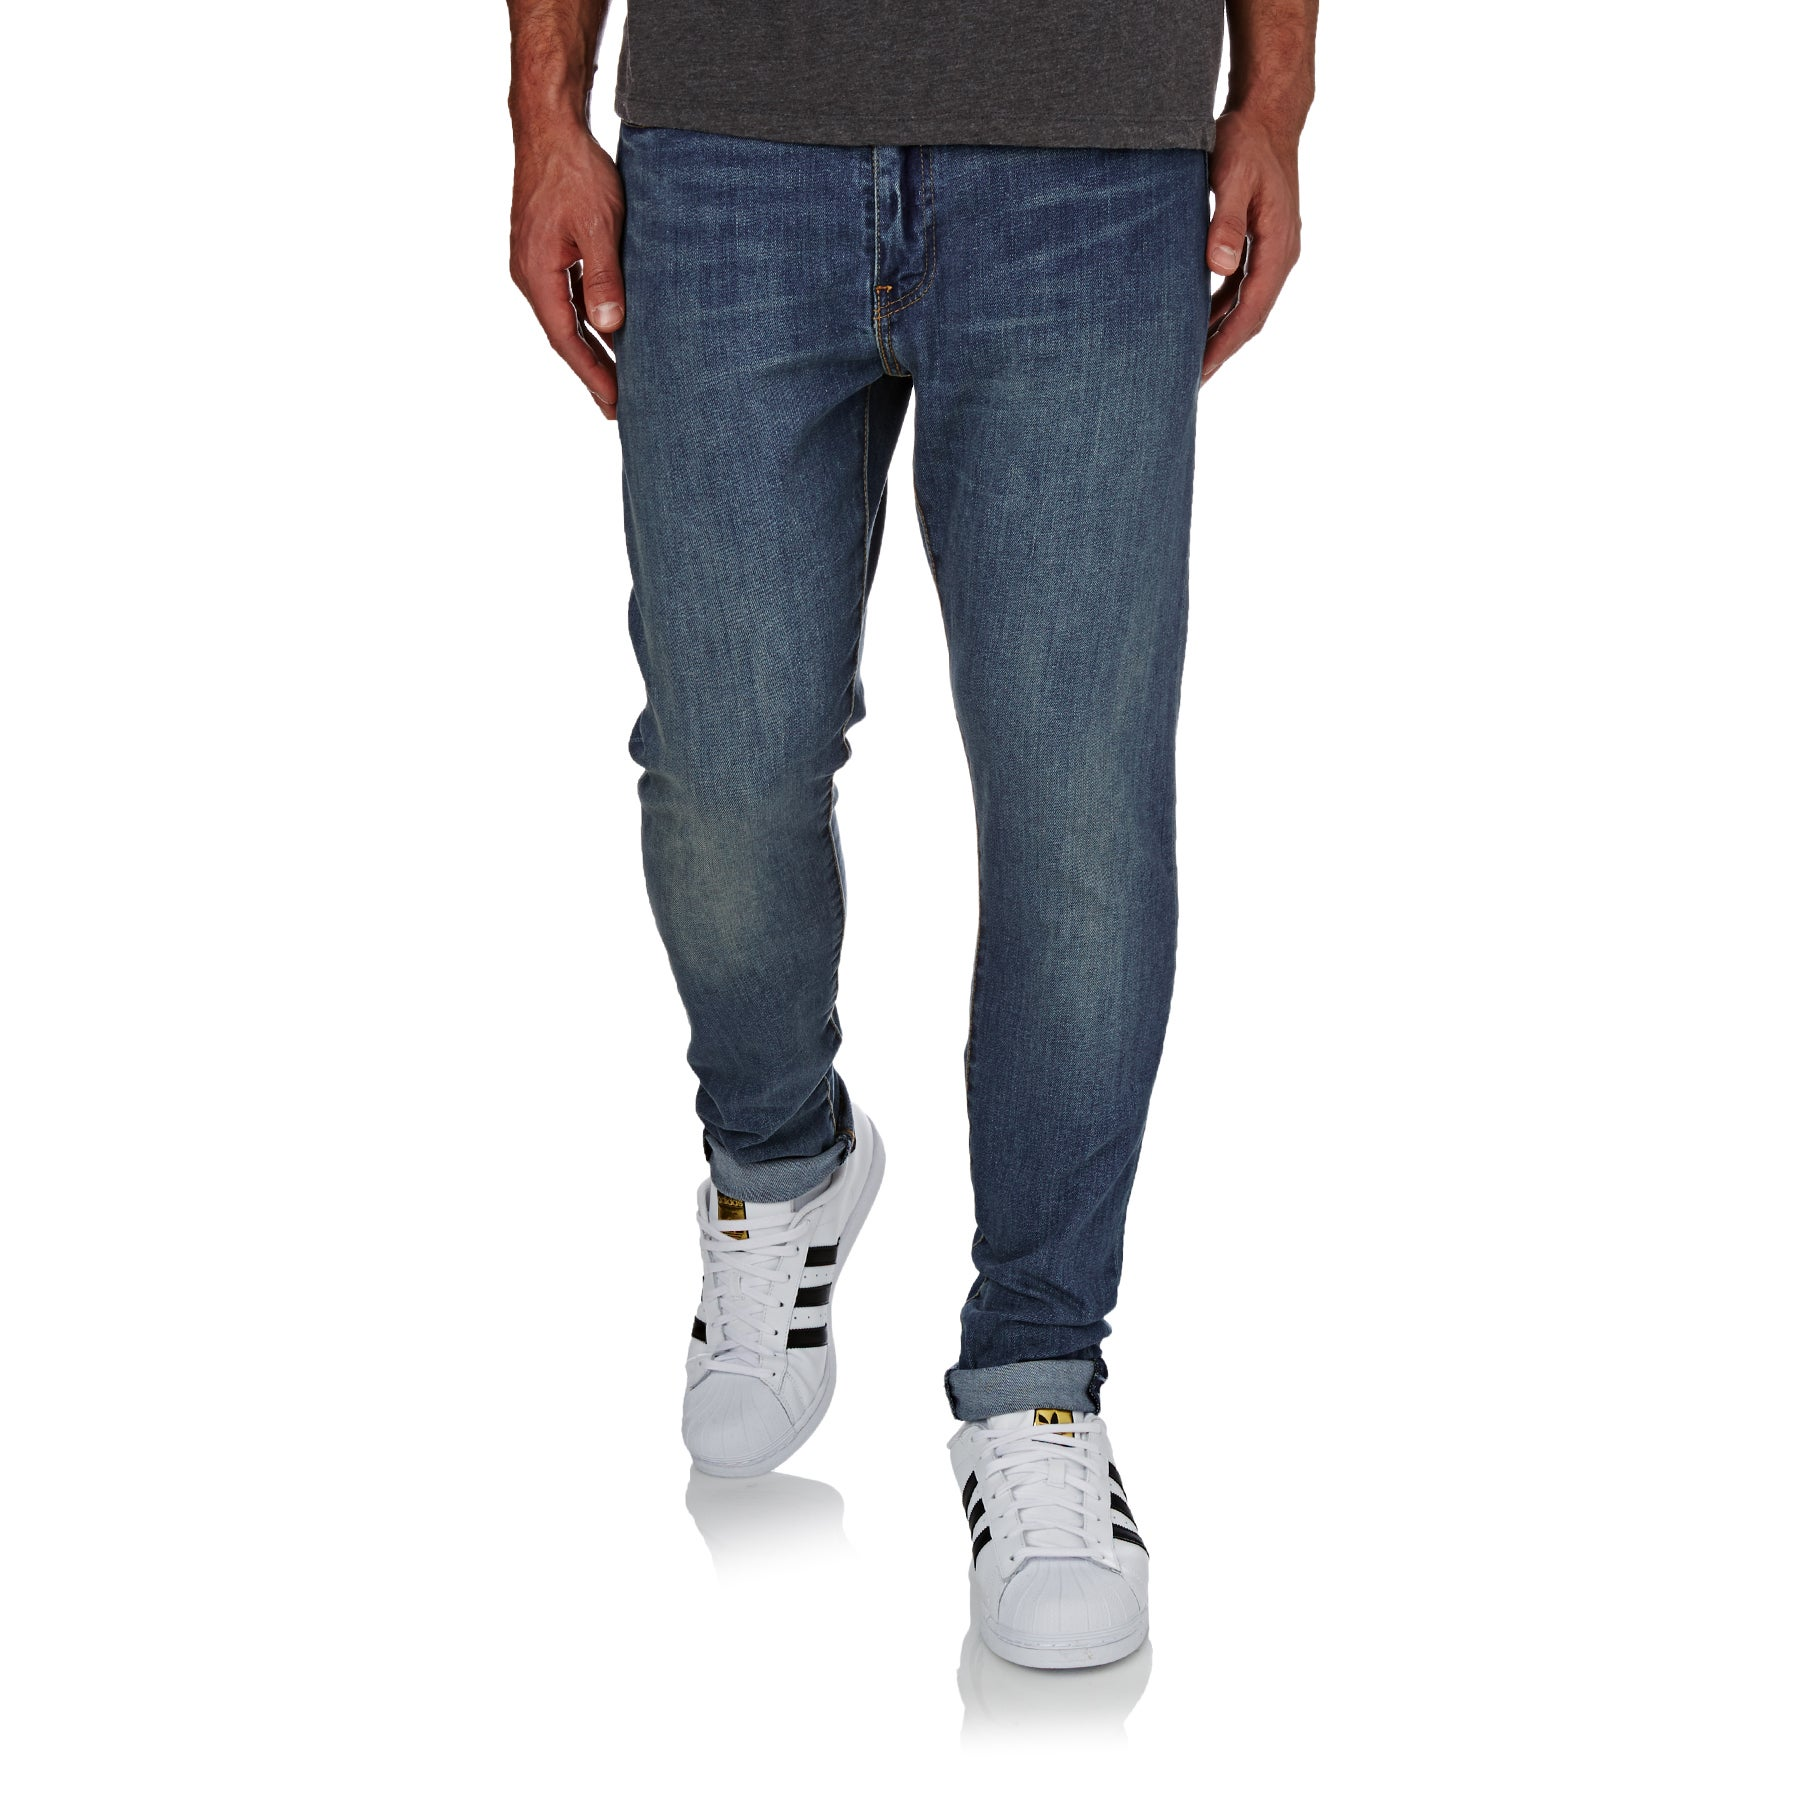 Levis 512 Slim Taper Fit Jeans